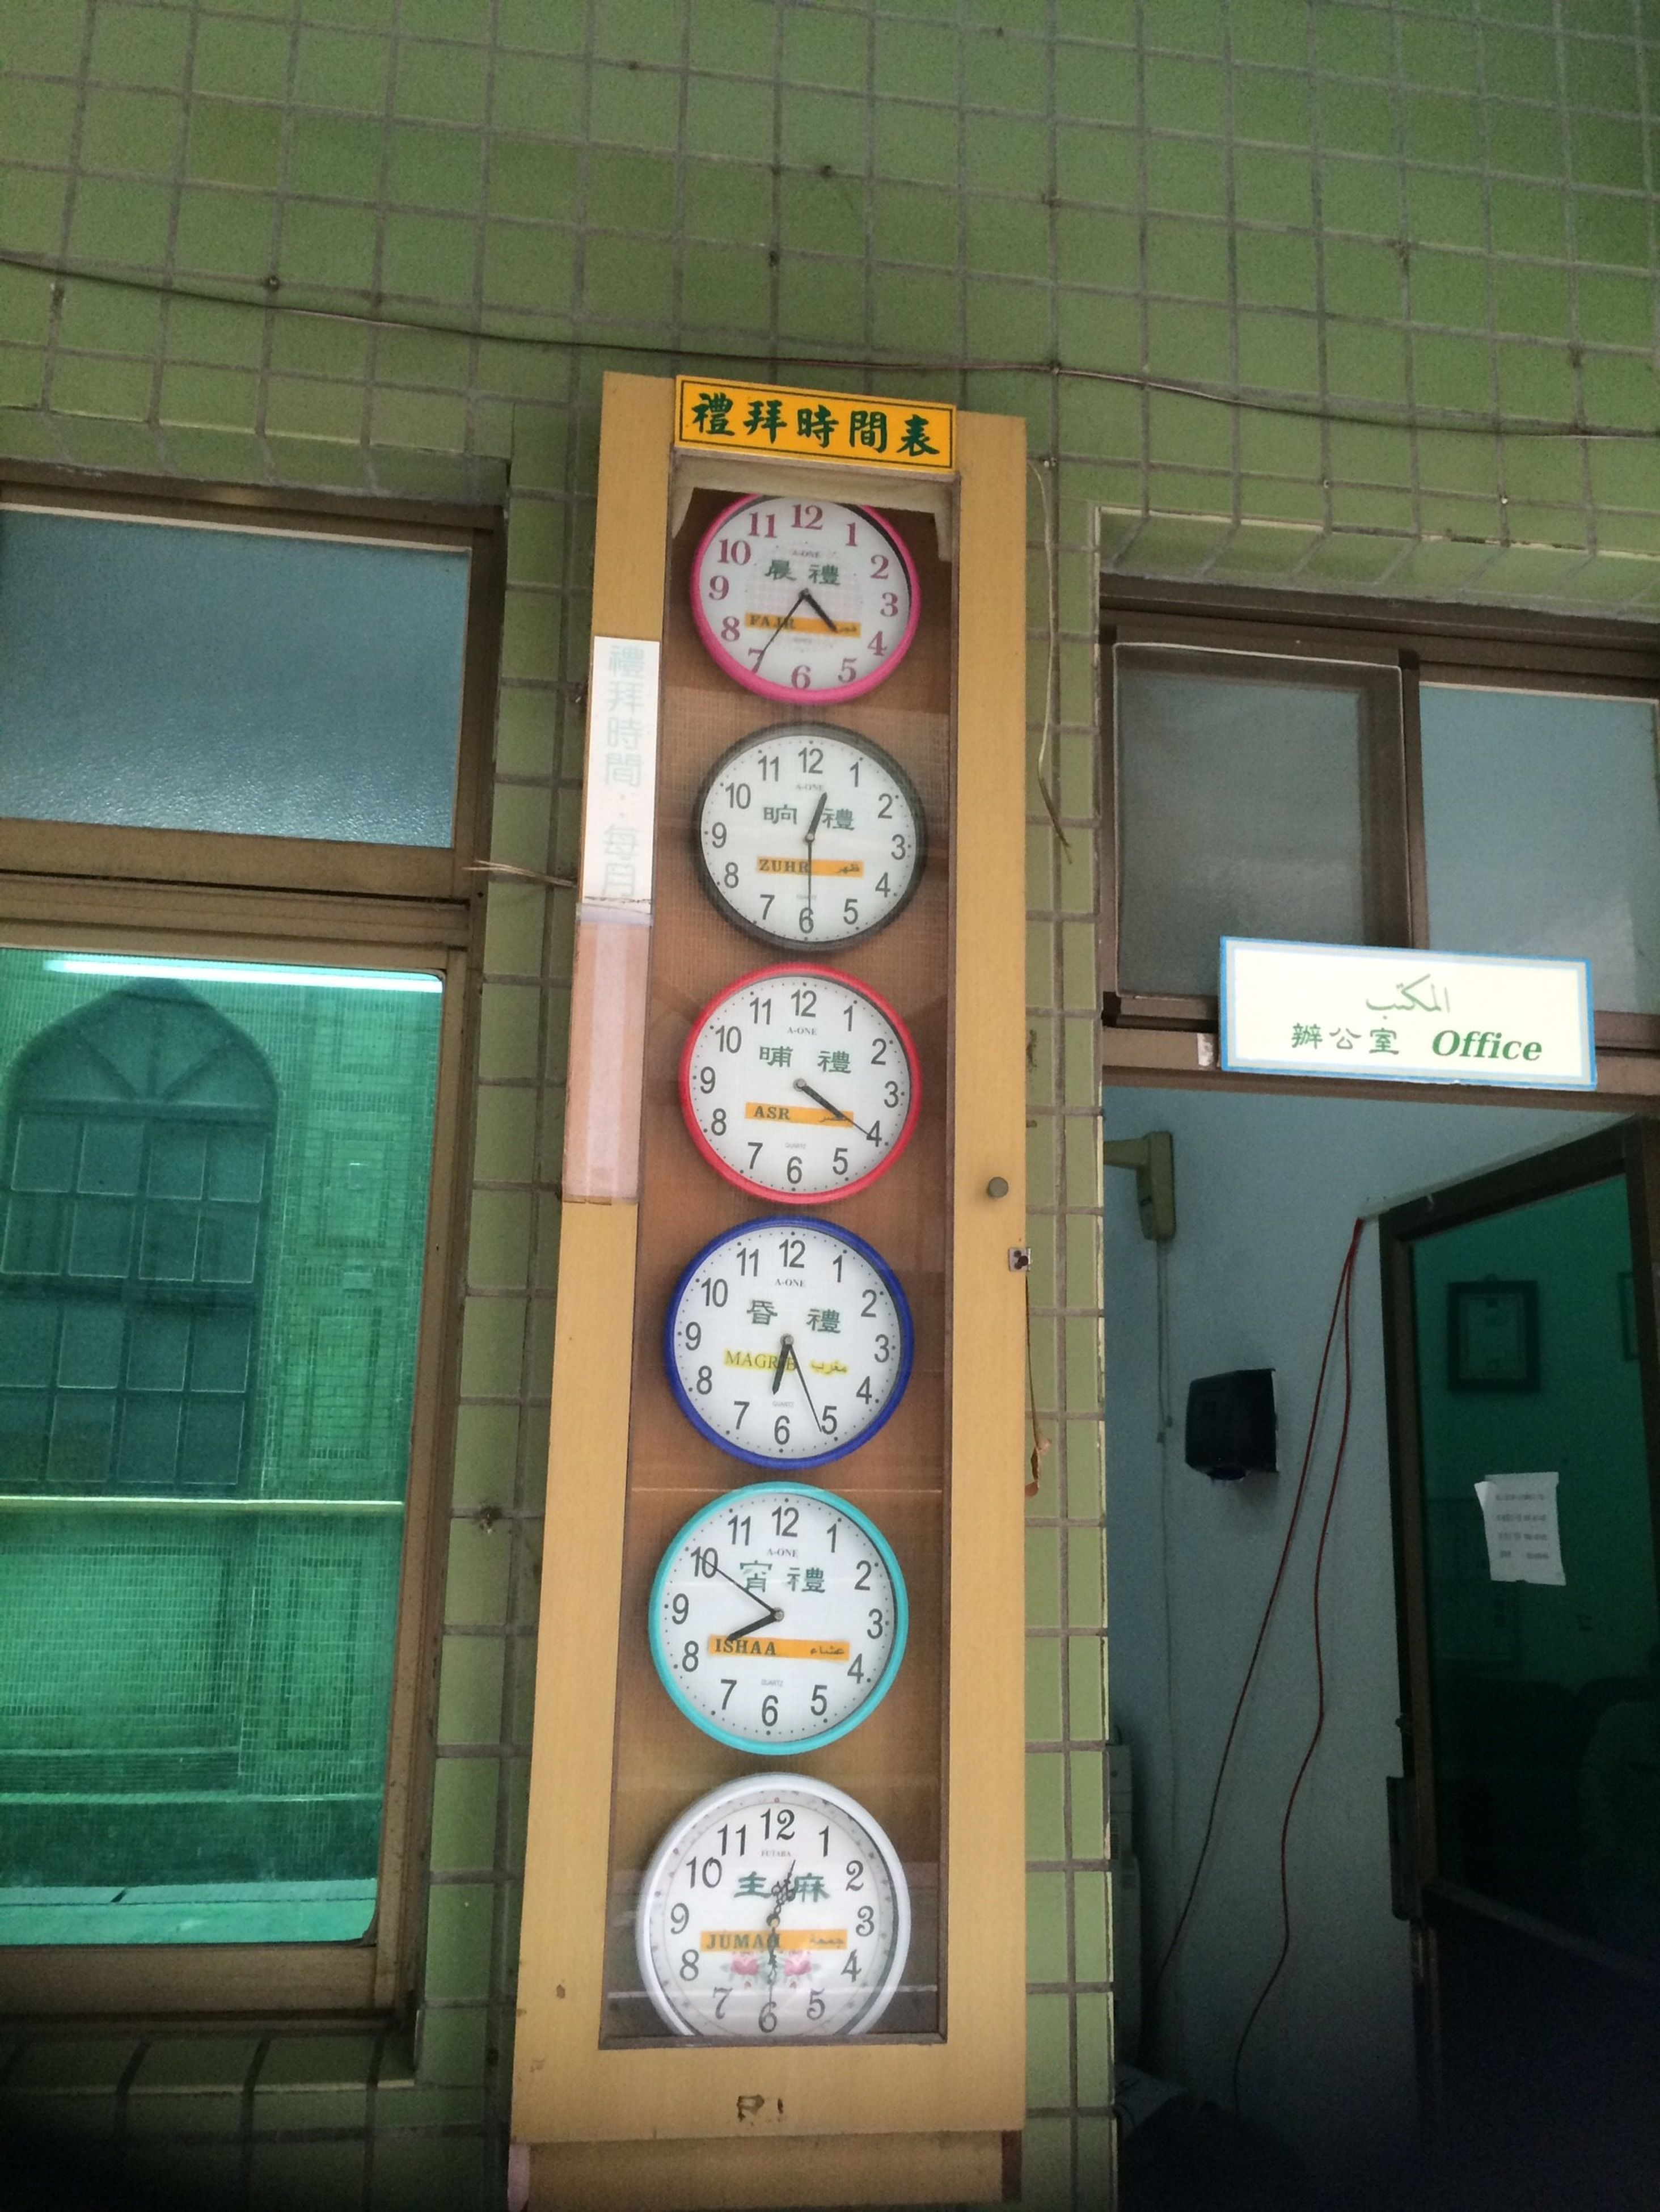 communication, text, western script, number, clock, indoors, architecture, information sign, built structure, non-western script, time, information, sign, window, capital letter, building exterior, wall - building feature, no people, wall, guidance